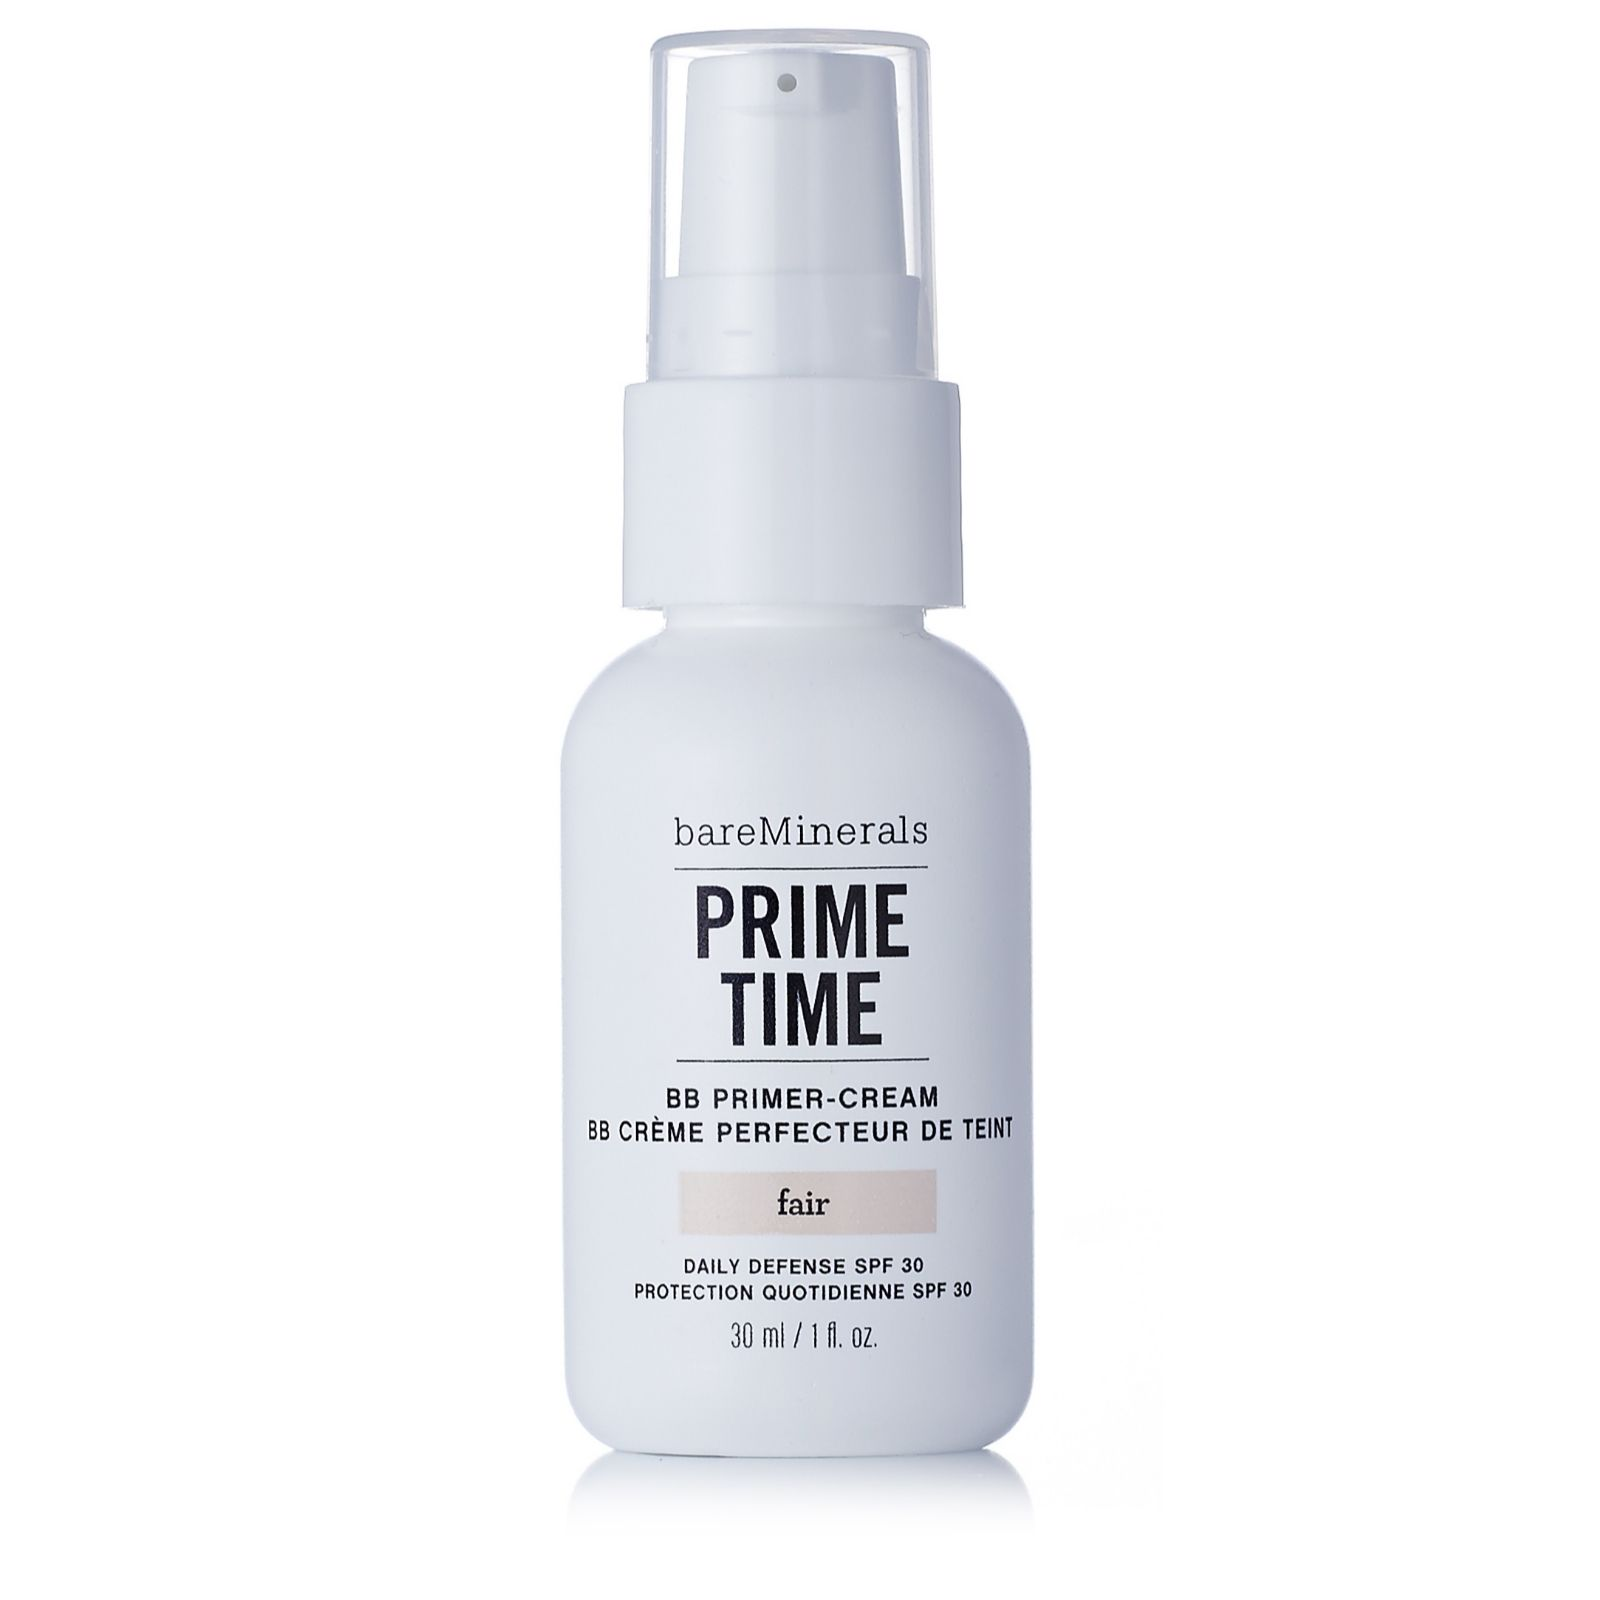 bareminerals prime time before and after. bareminerals prime time before and after